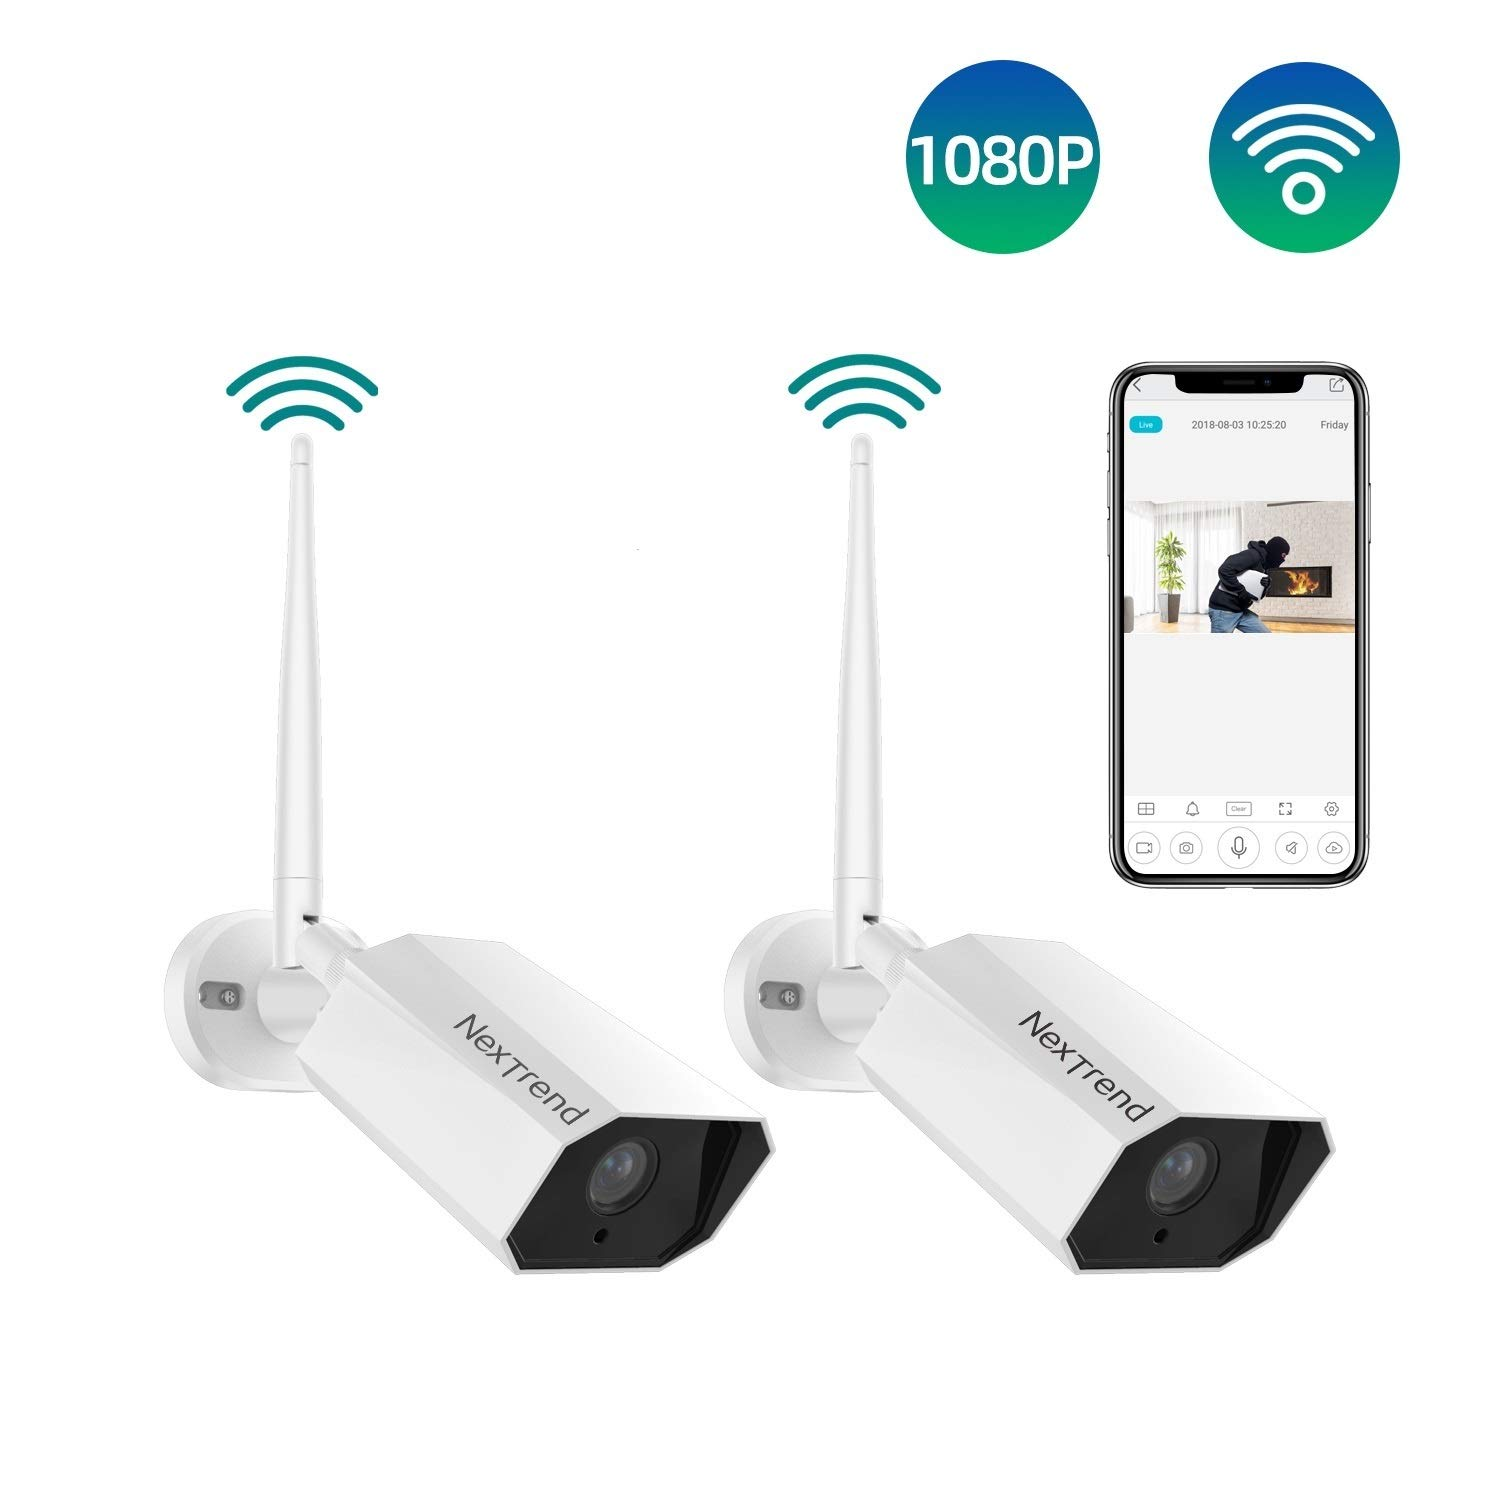 Wireless Security Camera Outdoor, NexTrend 1080P Full HD WiFi Surveillance Cameras with Night Vision Two Way Audio Motion Detection IP66 Waterproof IP Home Camera for Indoor Outdoors Free APP